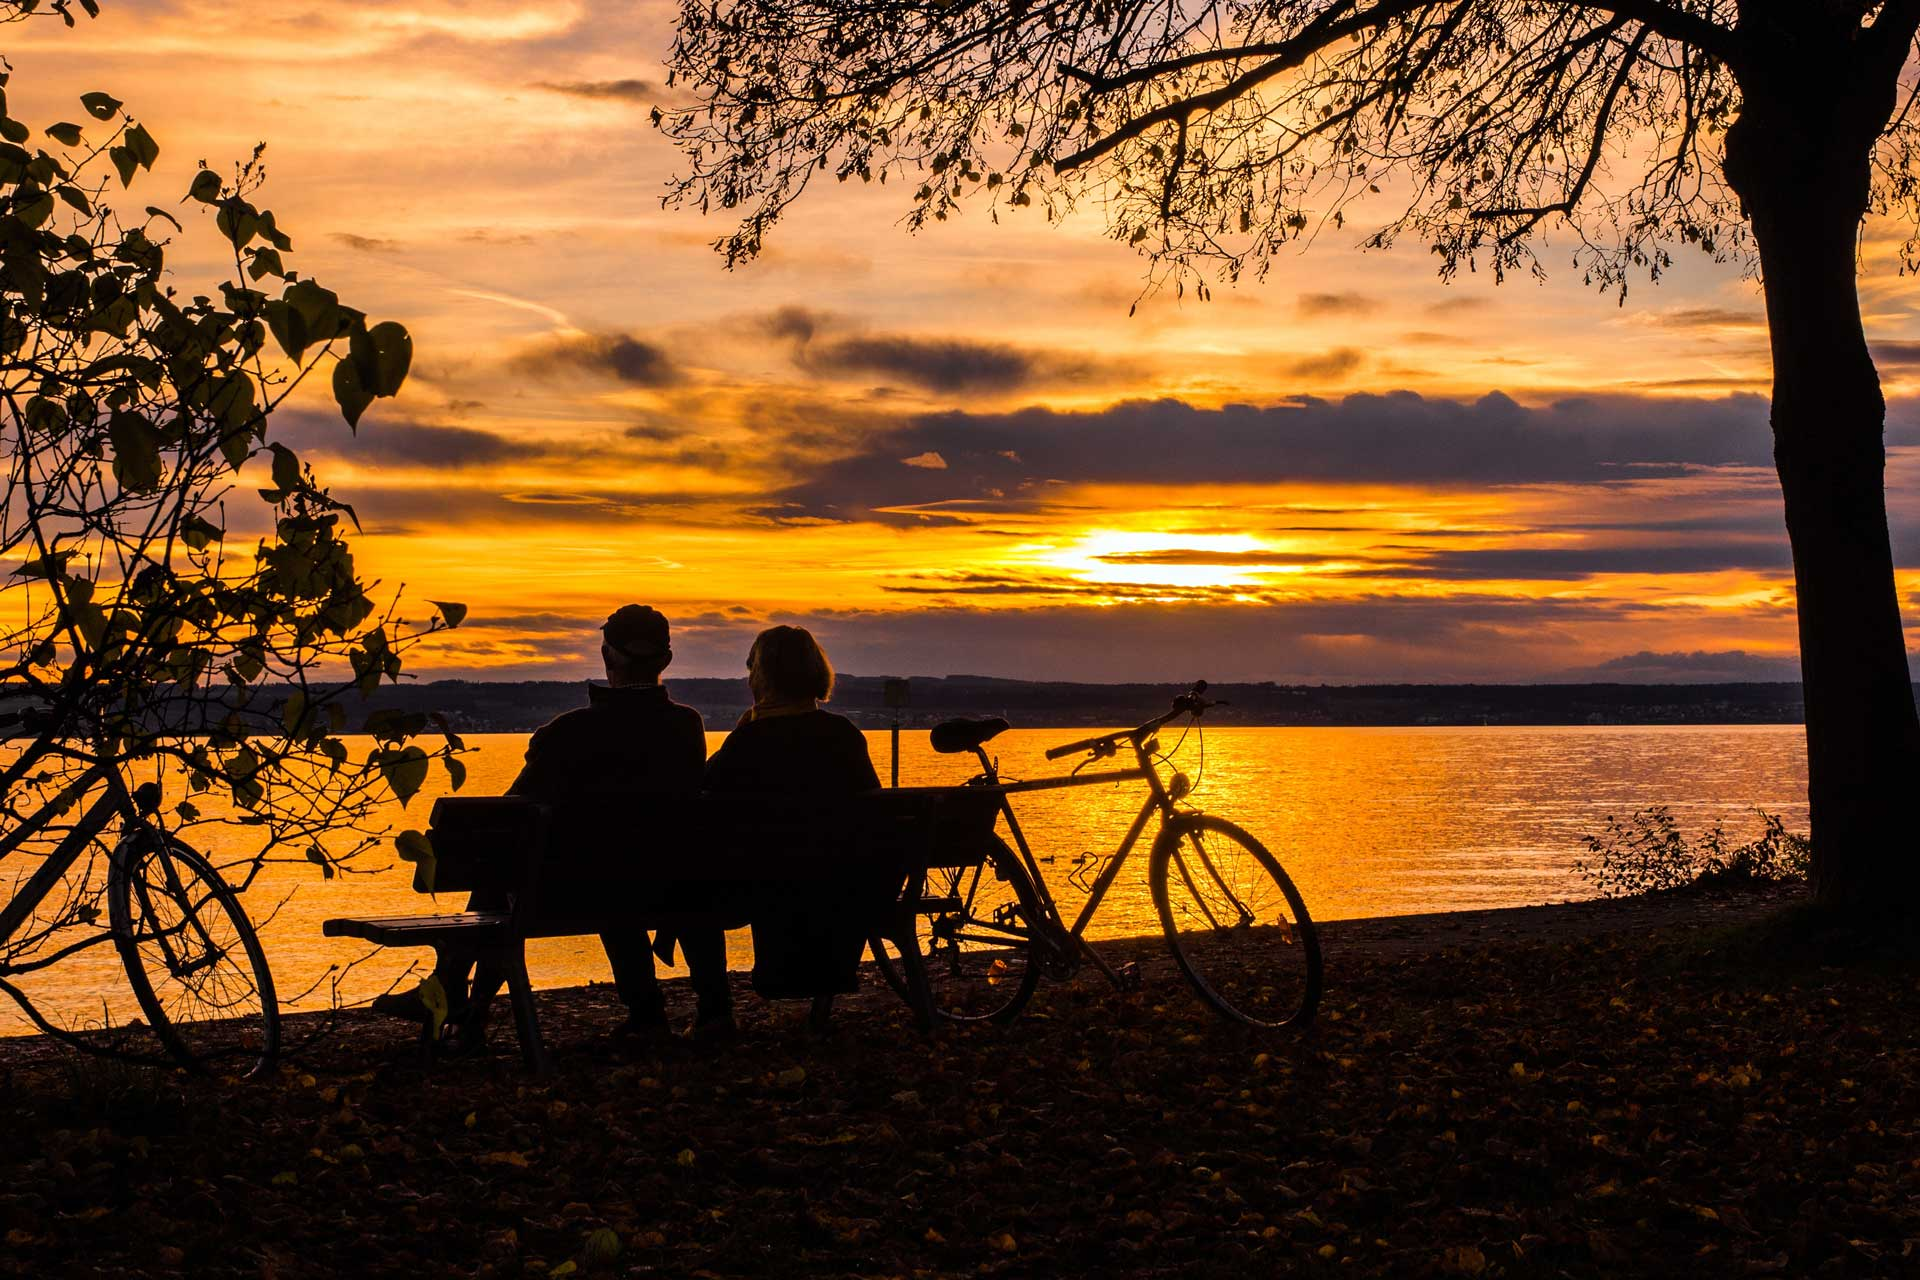 Cute Couple Together Wallpaper 15 Pictures Of Love Couples At Sunset Couple Sunset